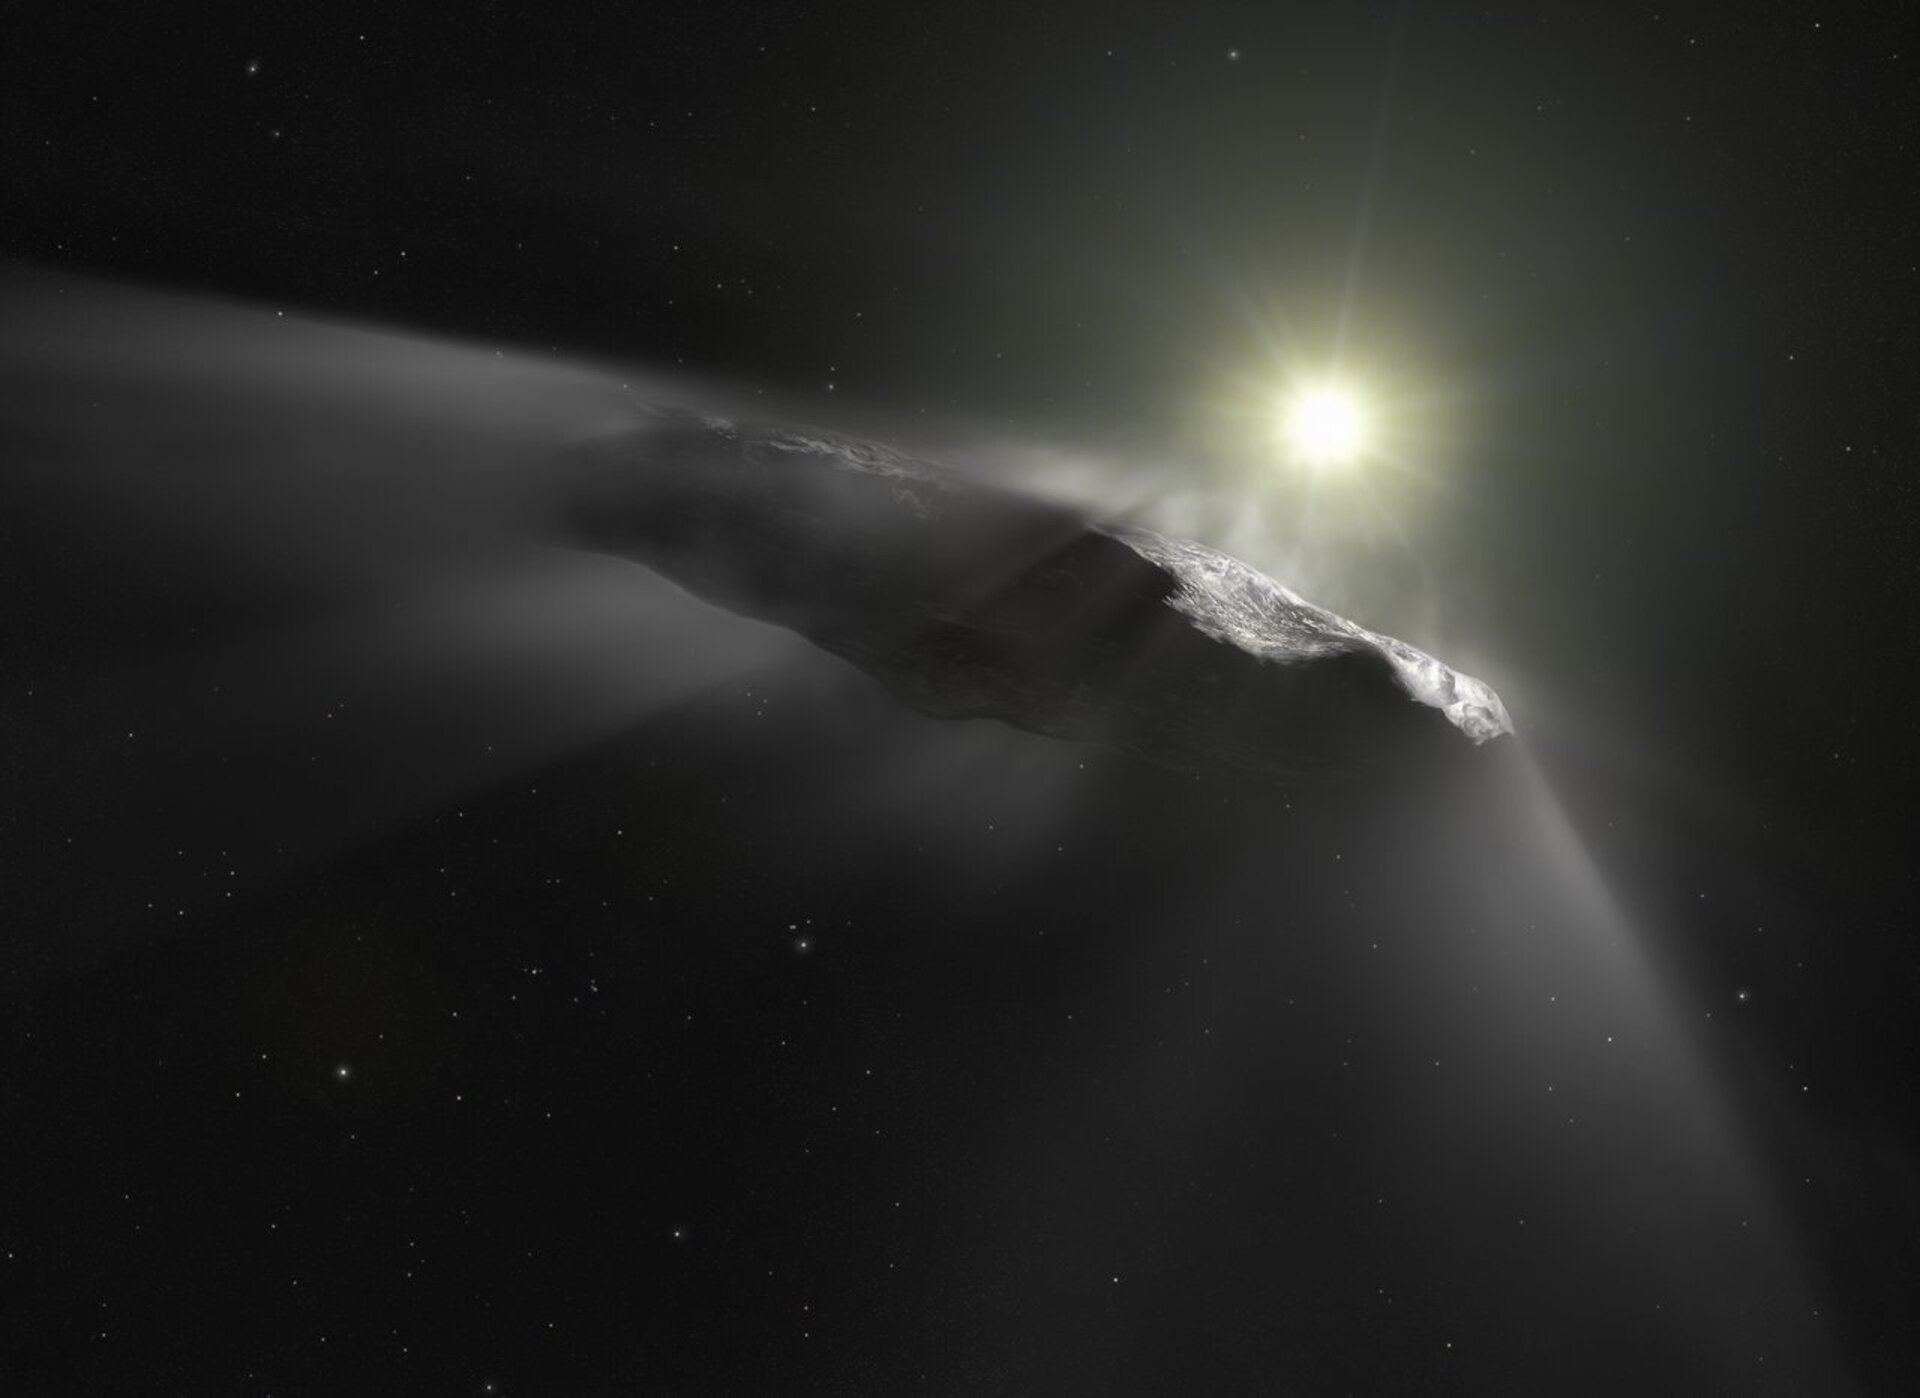 Artist impression of 'Oumuamua